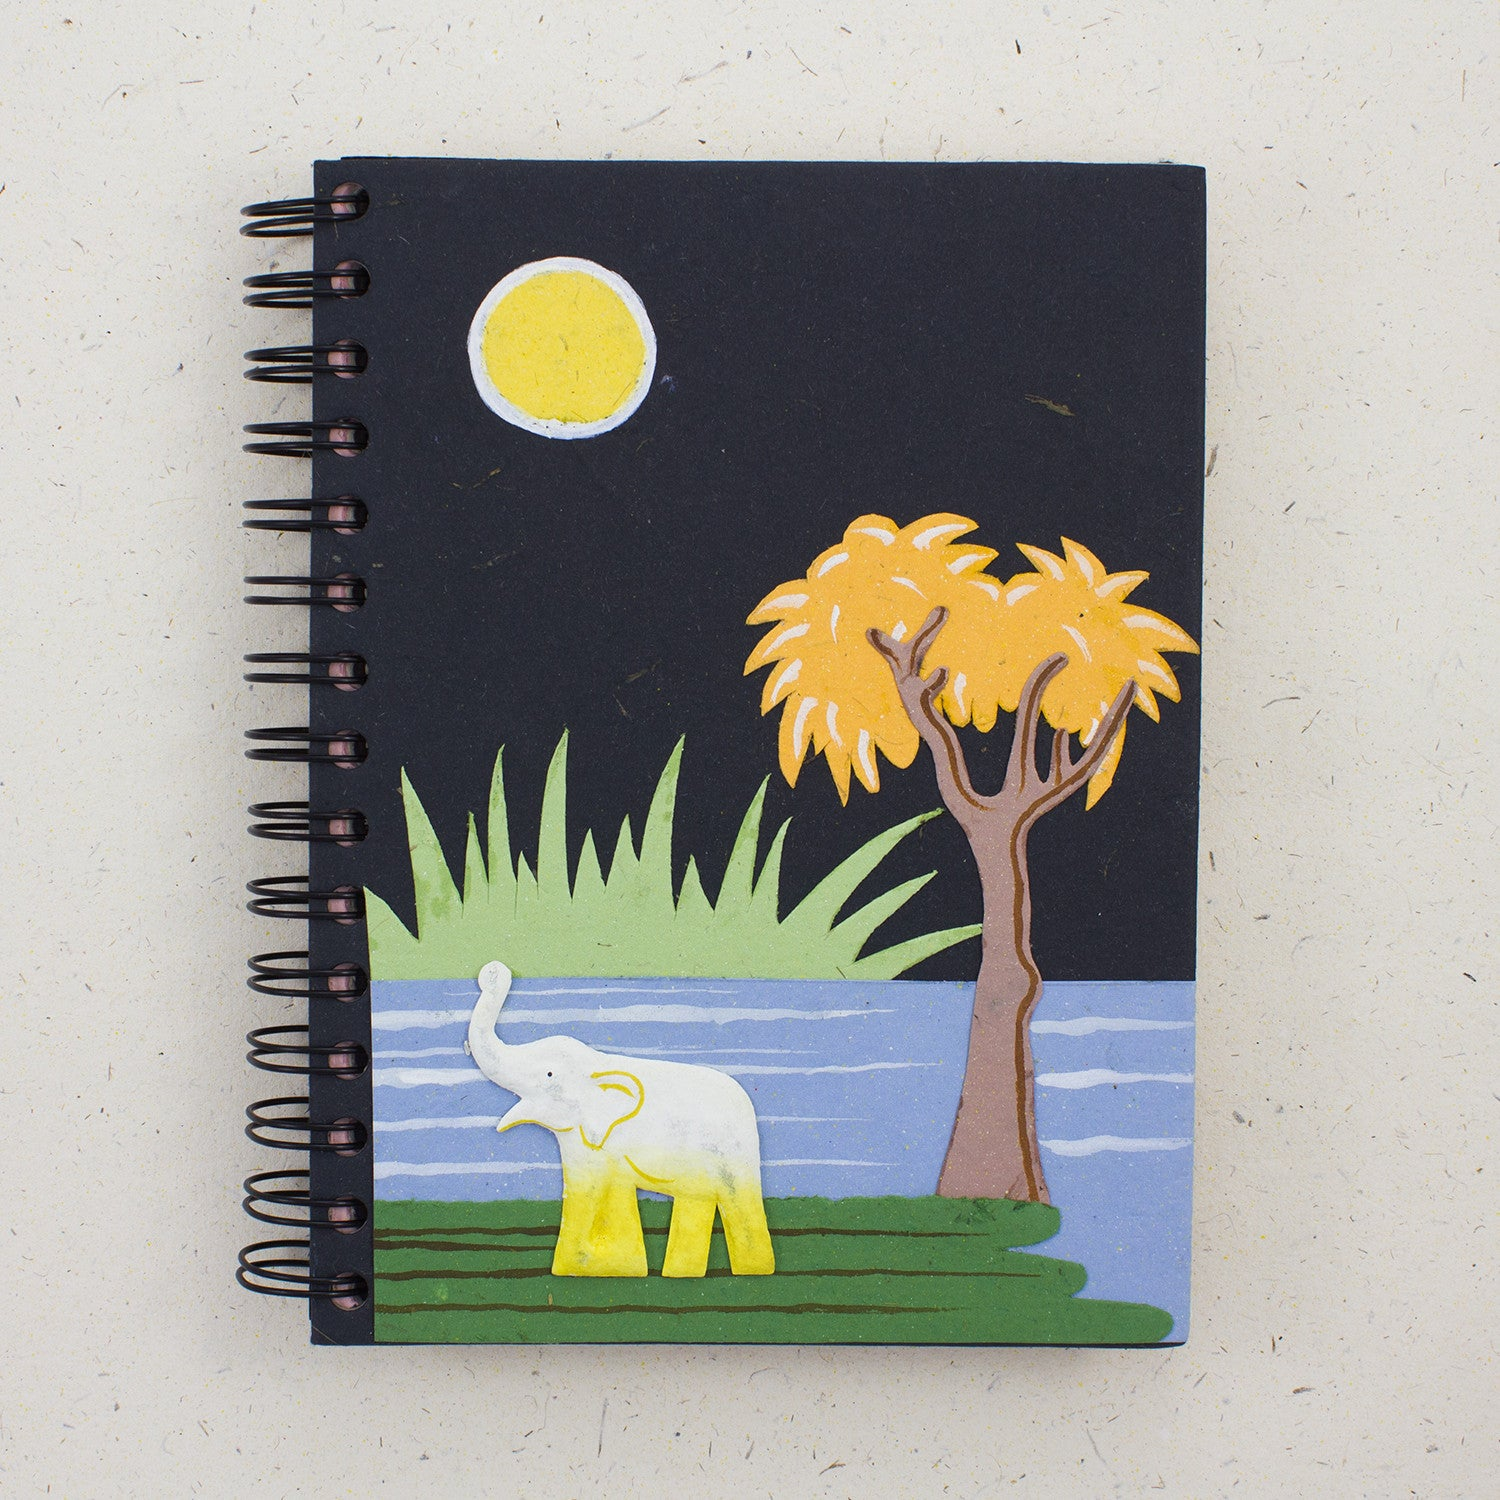 Poo Poo Paper Notebook: Made of Recycled Elephant Poop